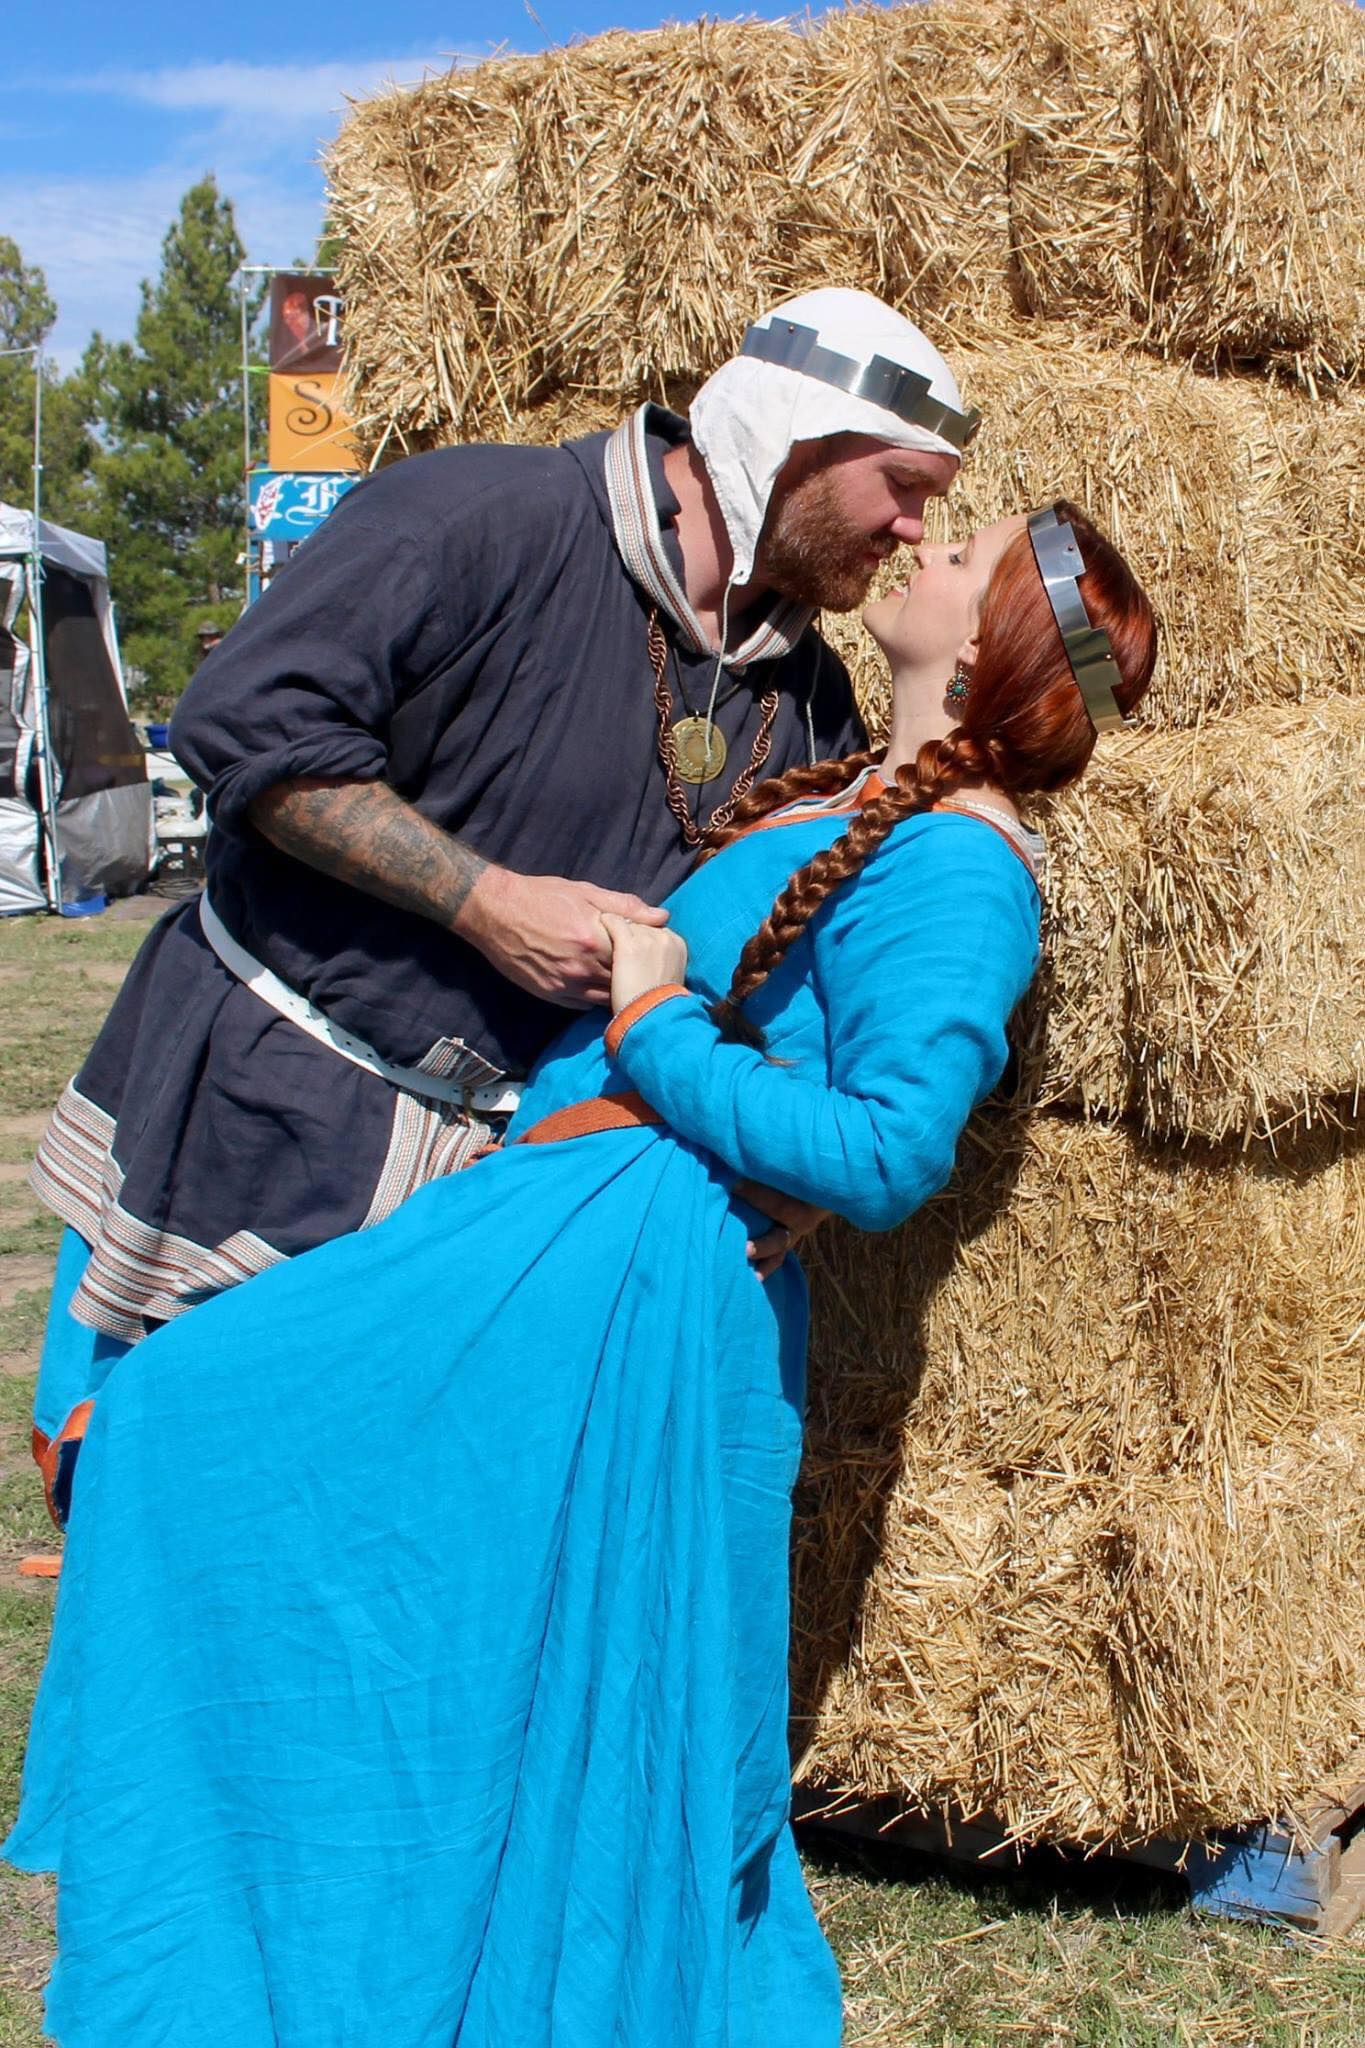 Brian dipping Lia into a kiss in front of haybales at Estrella War town square